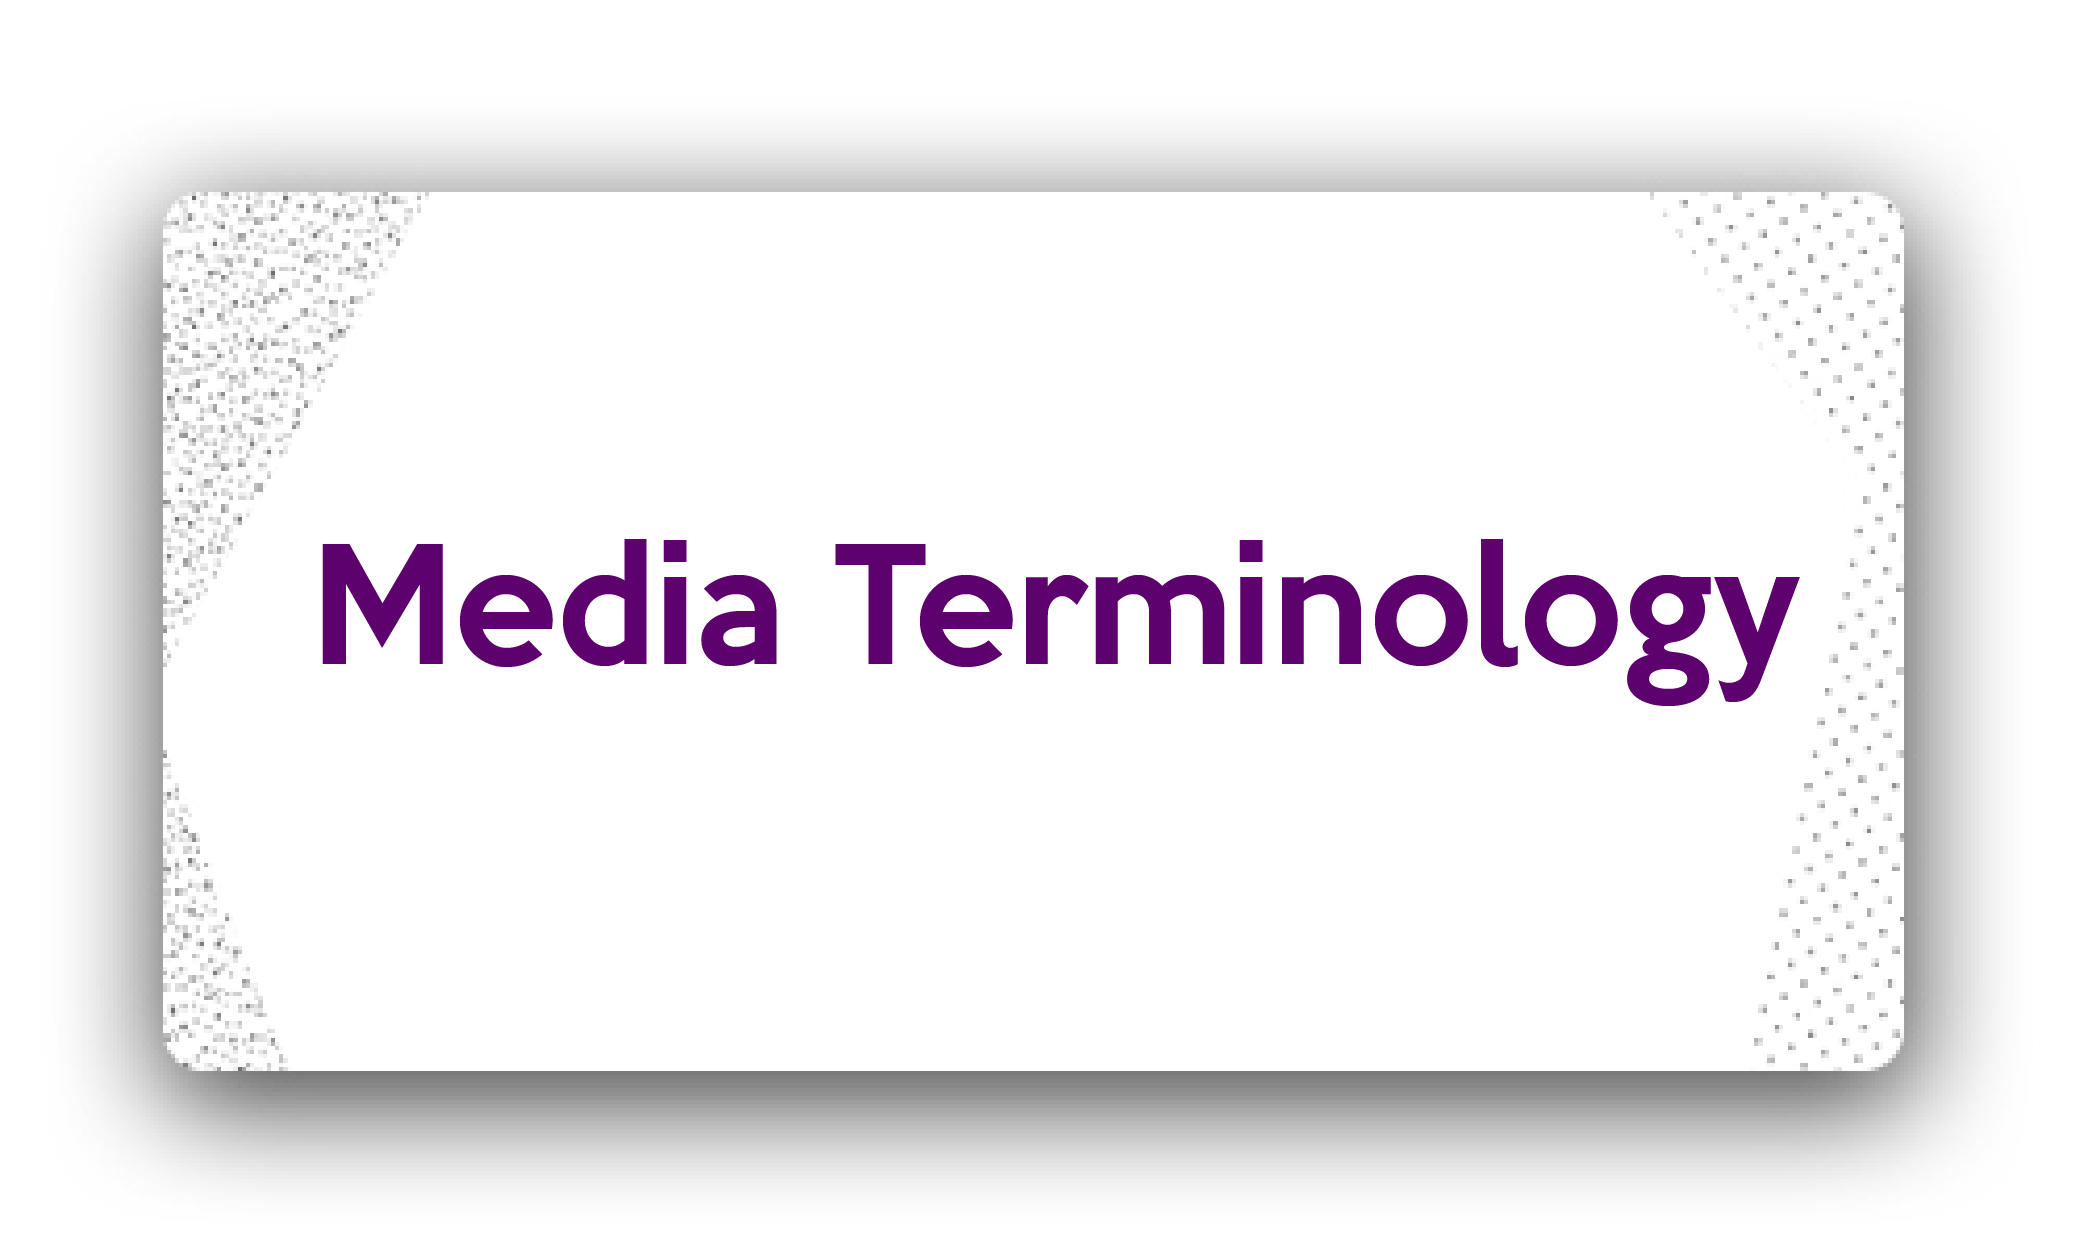 Title-Media Terminology